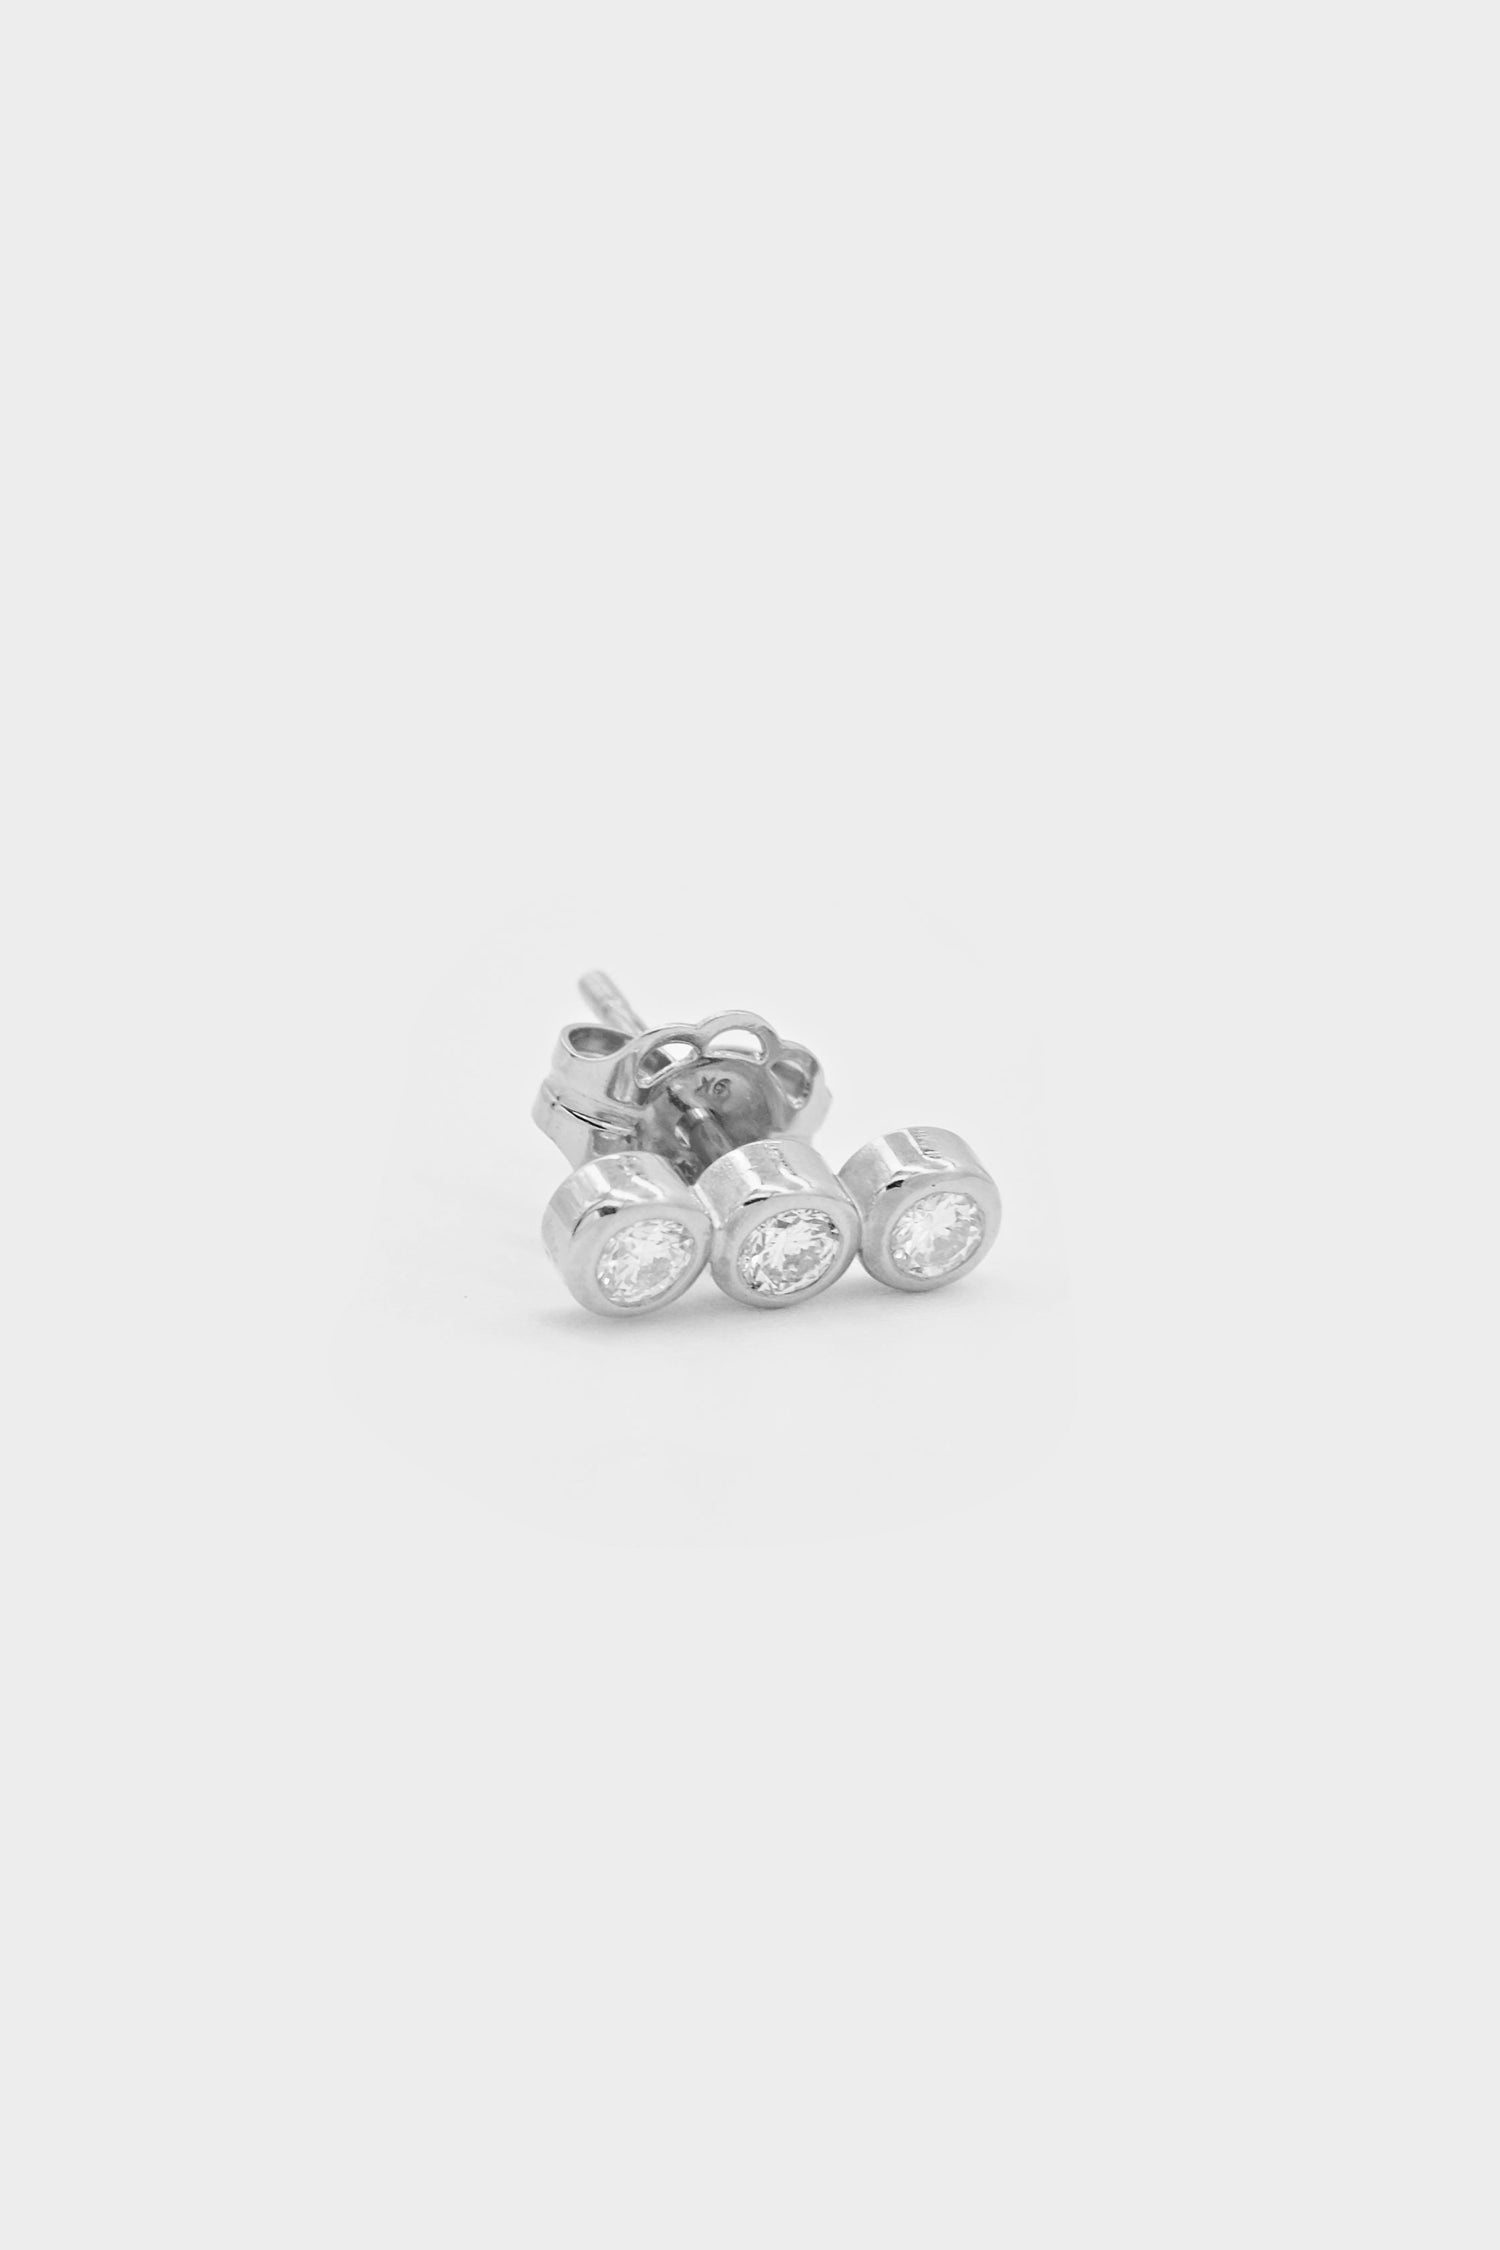 Sarah Triple Diamond Stud | White Gold